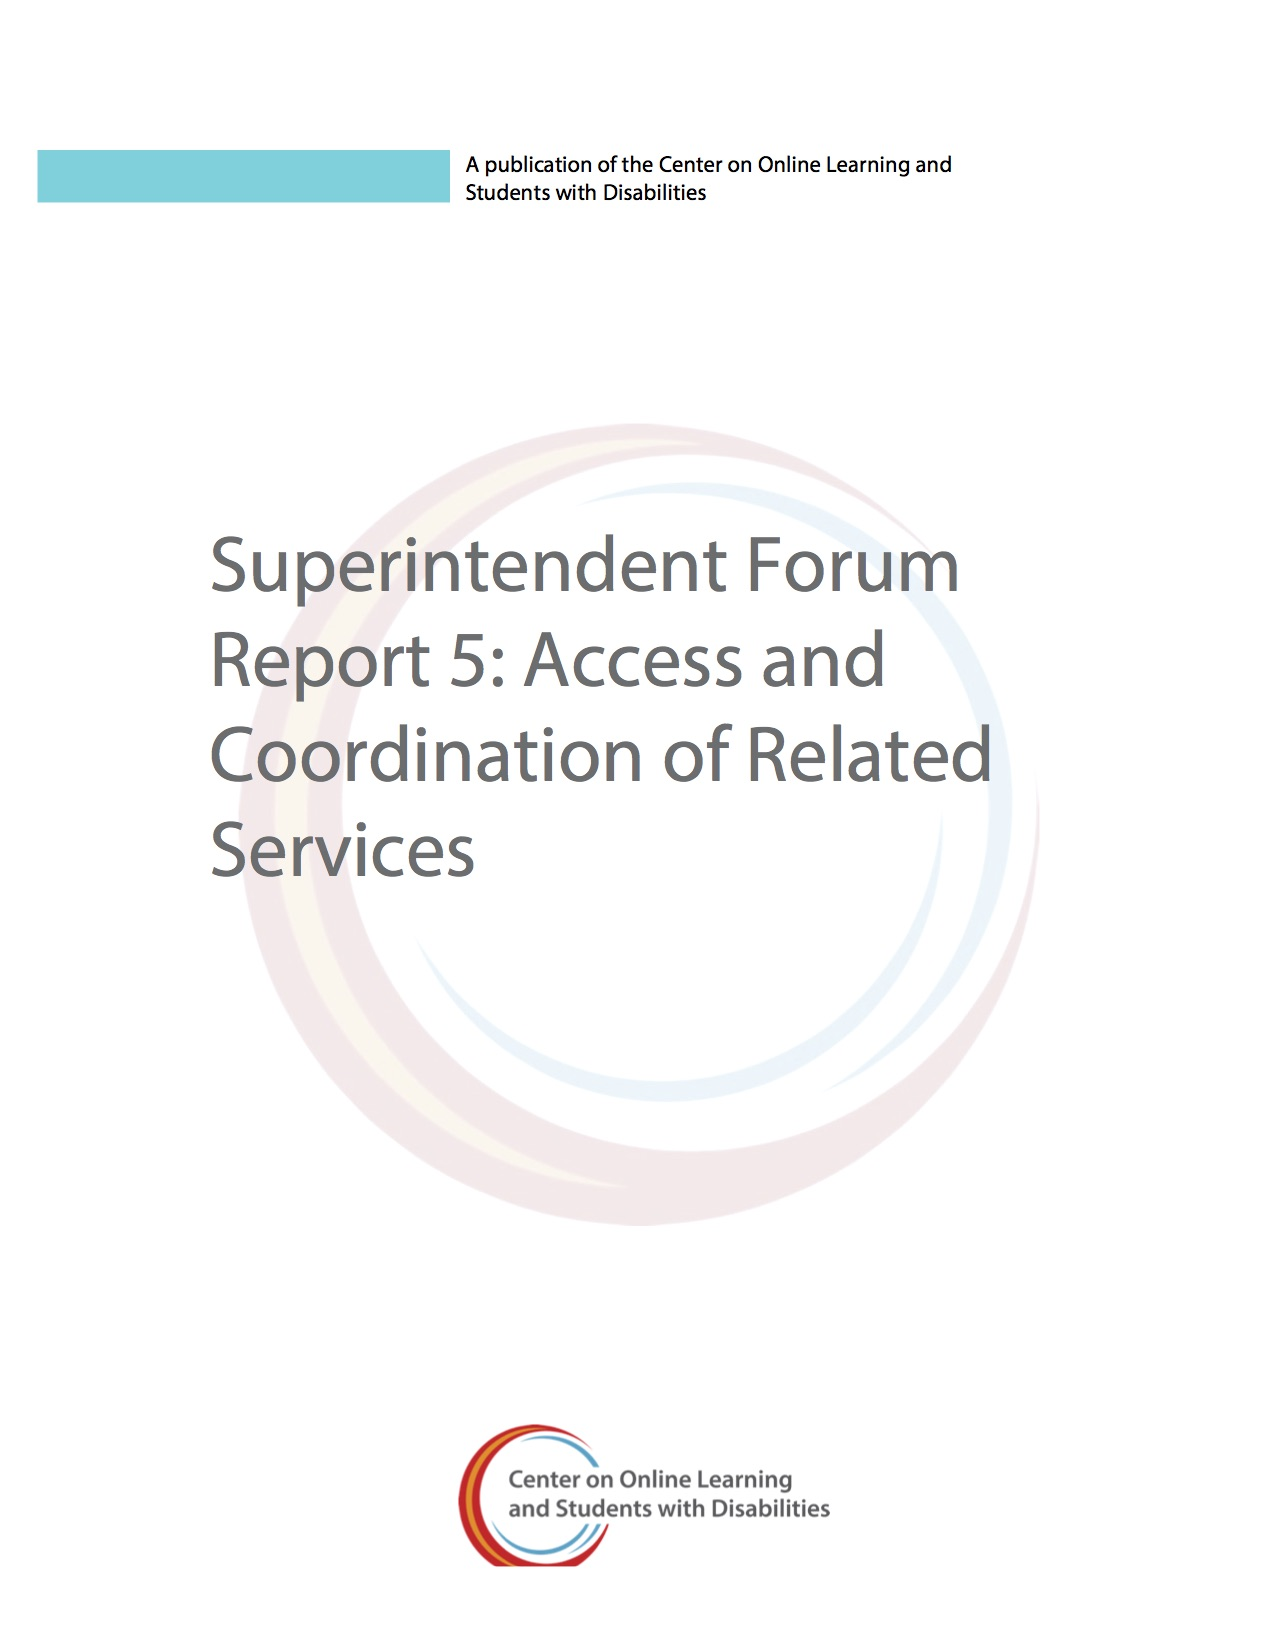 Superintendent Forum Report 5: Access And Coordination Of Related Services